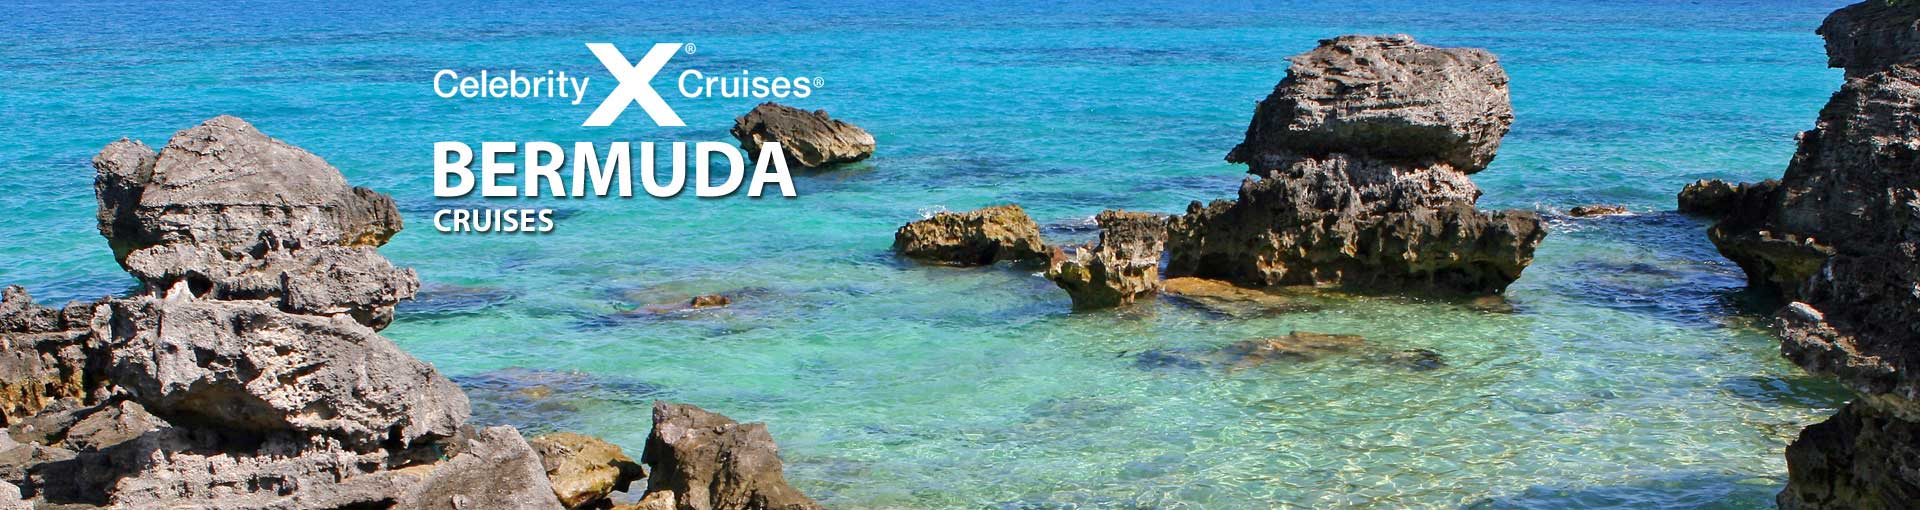 Celebrity Cruises Bermuda Cruises